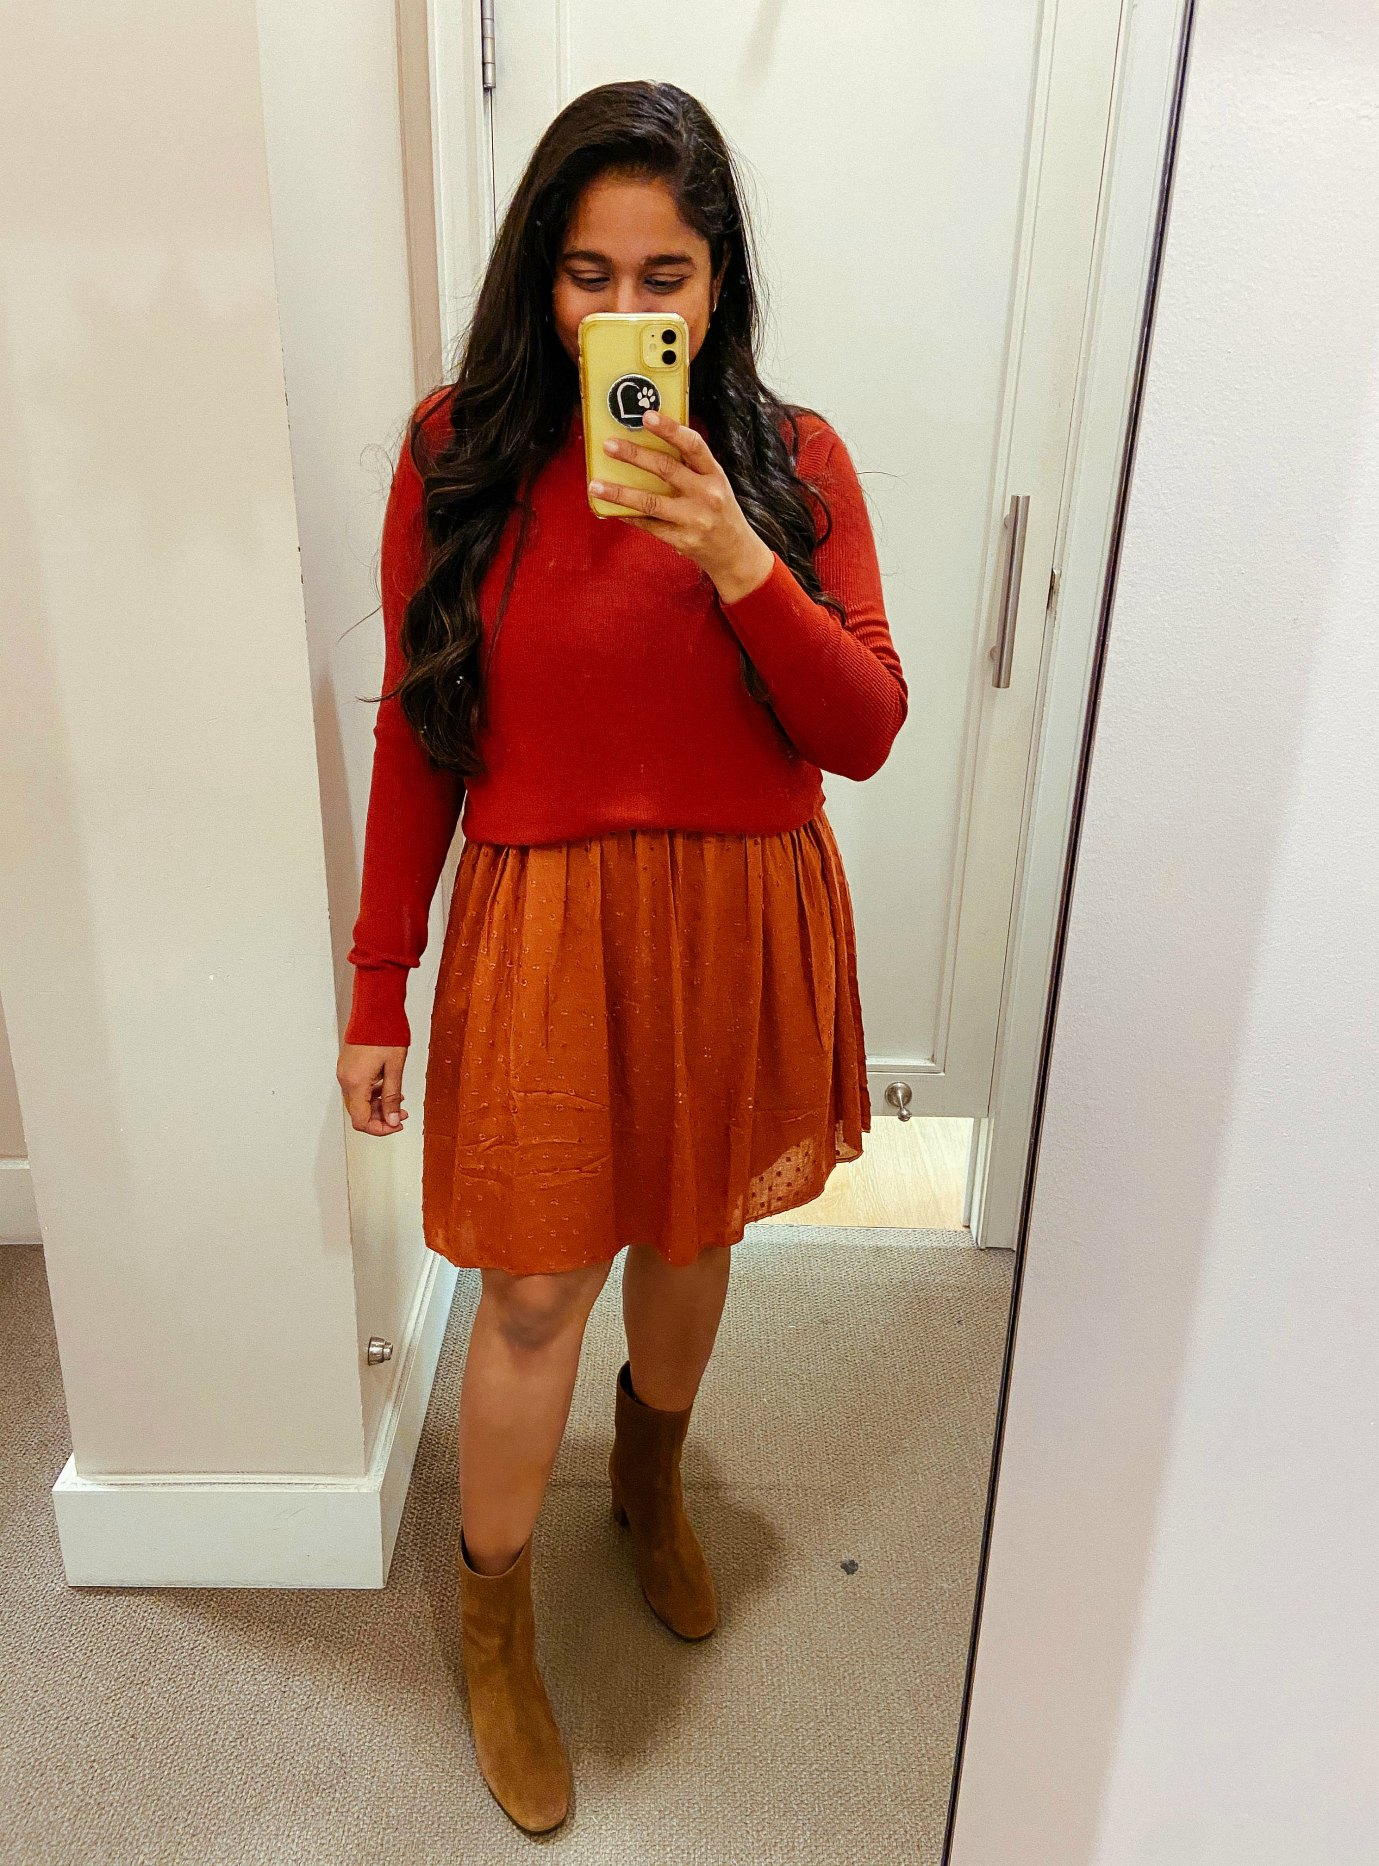 Fall fashion WFH essentials from Loft-wearing Loft Clip Strappy Swing Dress, Crew Neck Sweater in clay, J.crew Suede ankle Boots | Fall Clothing by popular Maryland modest fashion blog, Dreaming Loud: image of a woman wearing a Loft Clip Strappy Swing Dress, Crew Neck Sweater in clay, and J.crew Suede ankle Boots.